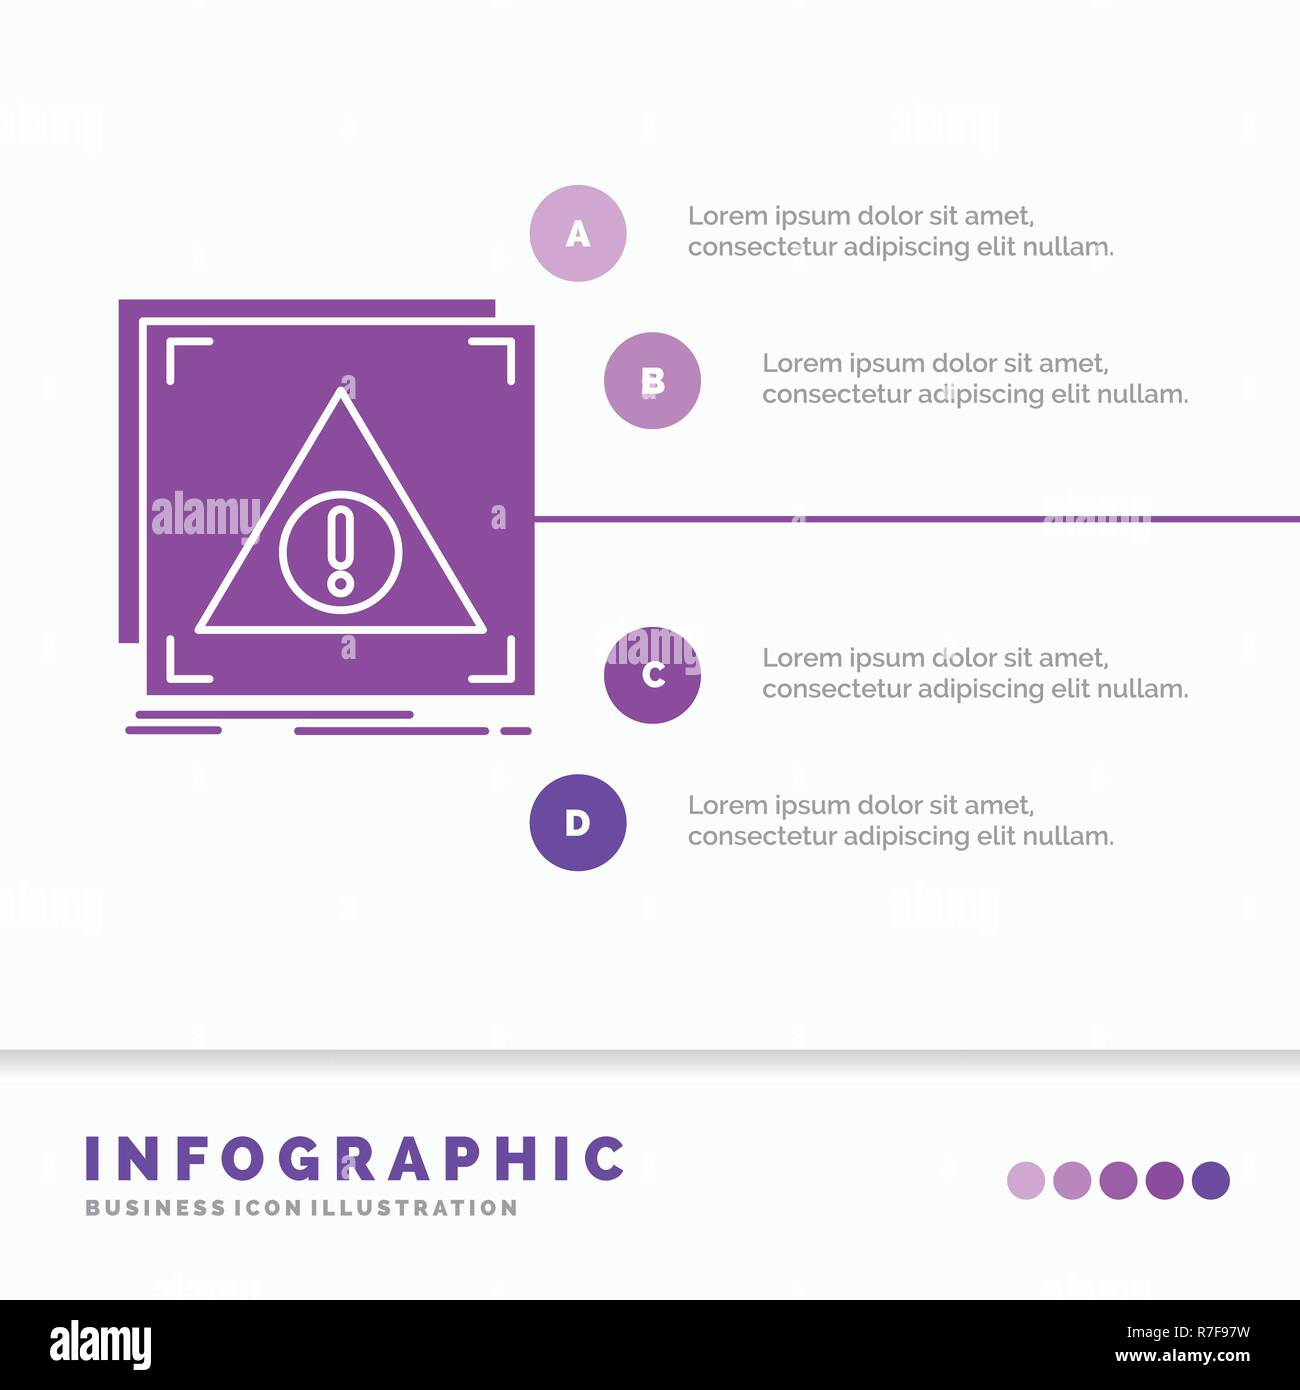 Error, Application, Denied, server, alert Infographics Template for Website and Presentation. GLyph Purple icon infographic style vector illustration. - Stock Image